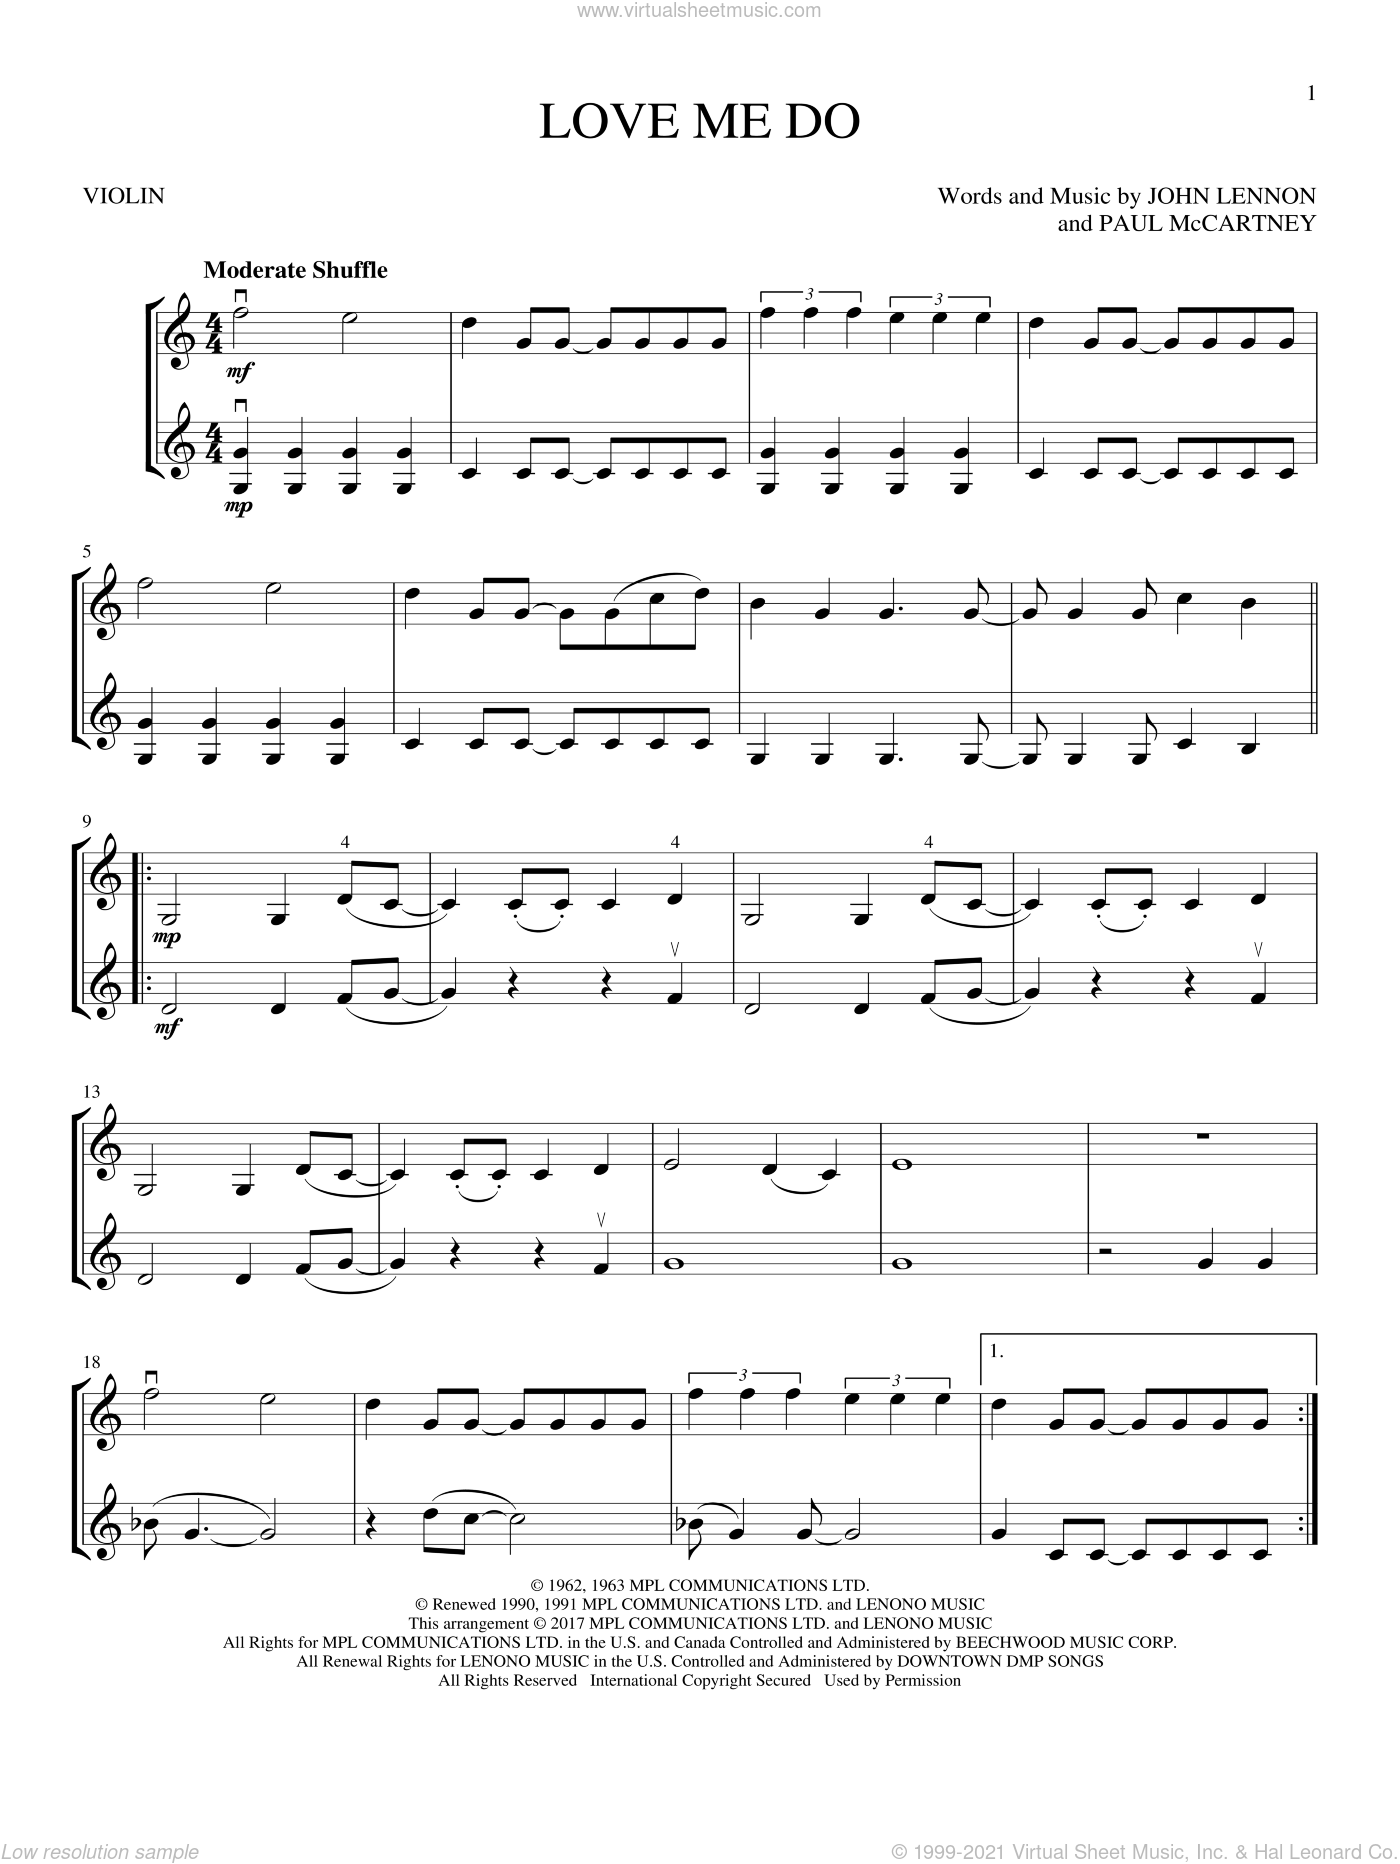 Love Me Do sheet music for two violins (duets, violin duets) by The Beatles, John Lennon and Paul McCartney, intermediate skill level